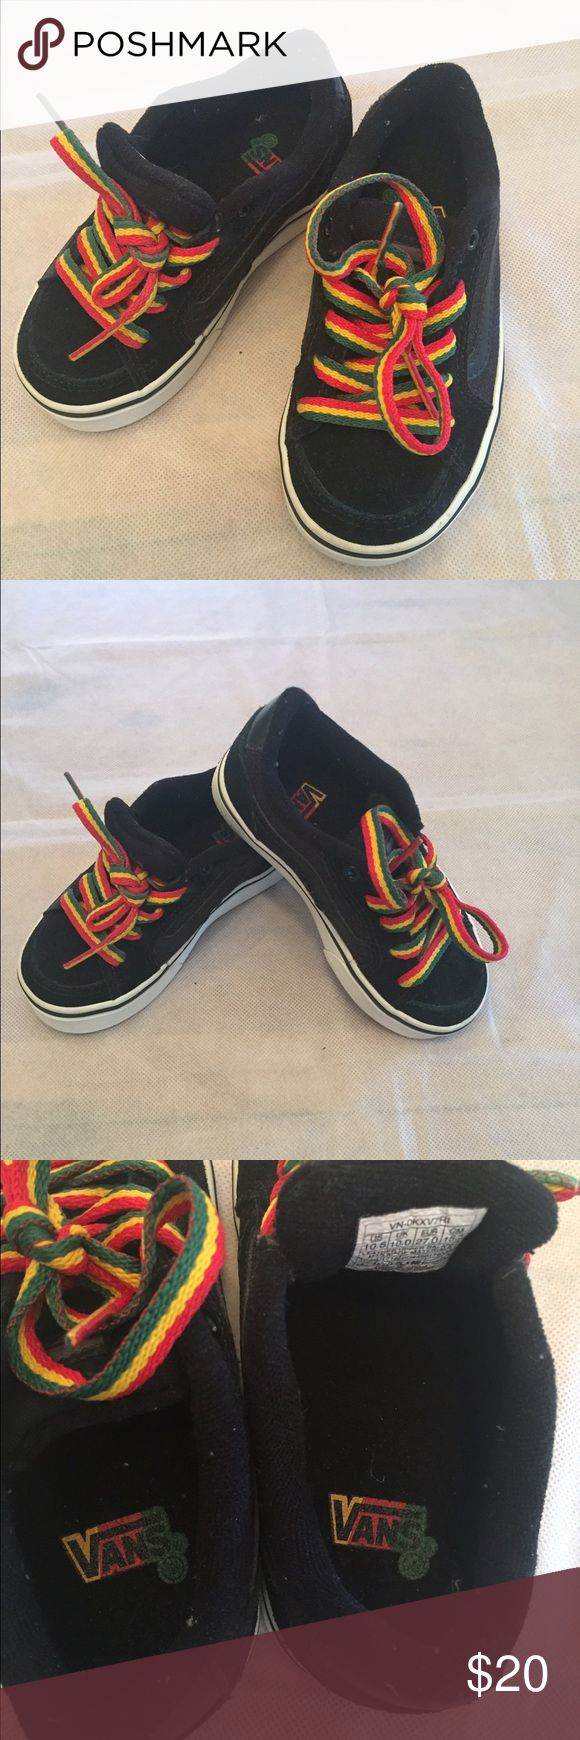 Super cute Rasta vans shoes👣 This super cute toddler skater shoes are in excellent conditions. No rips and very little signs of wear. All bundle buys get 20% discount 😱 Vans Shoes Sneakers